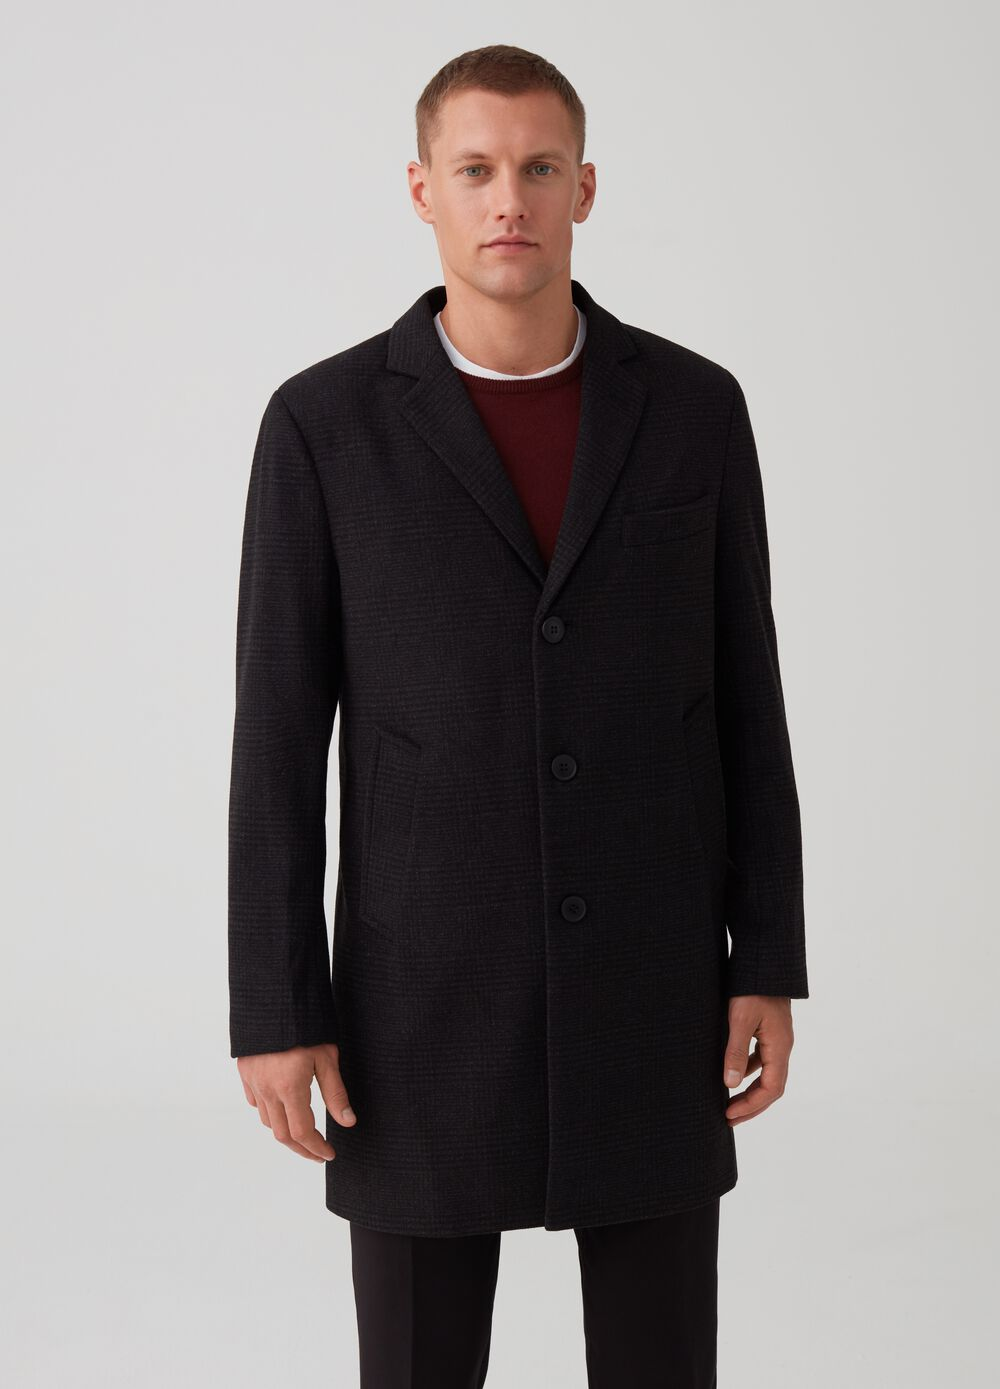 Three-button coat in Prince-of-Wales fabric